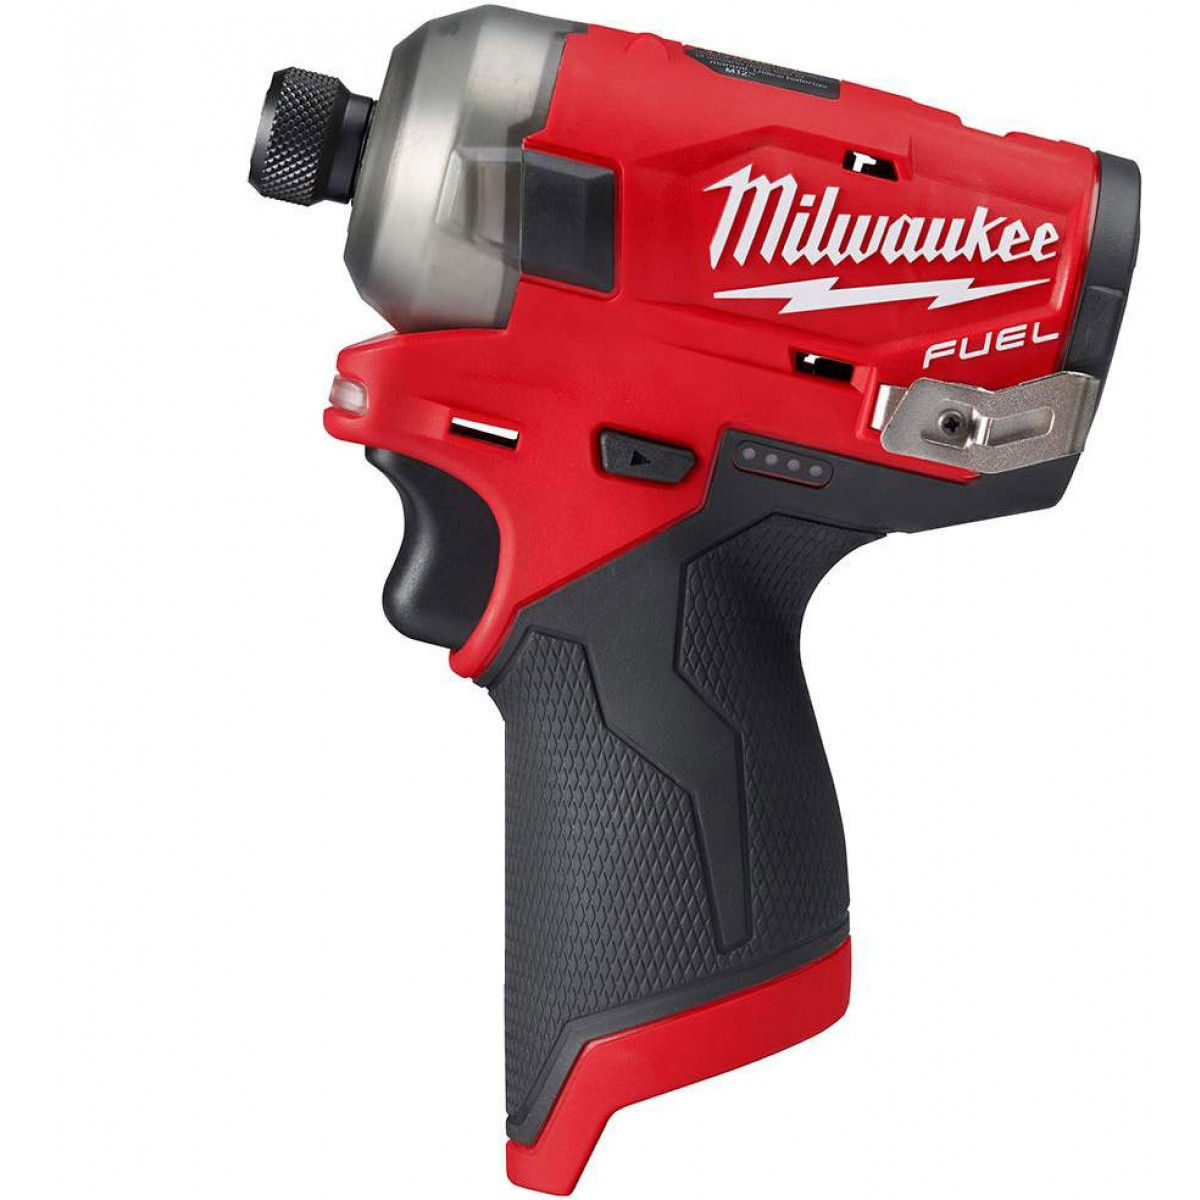 M12™ FUEL™ SURGE™ 1/4 in. Hex Hydraulic Driver Bare Tool